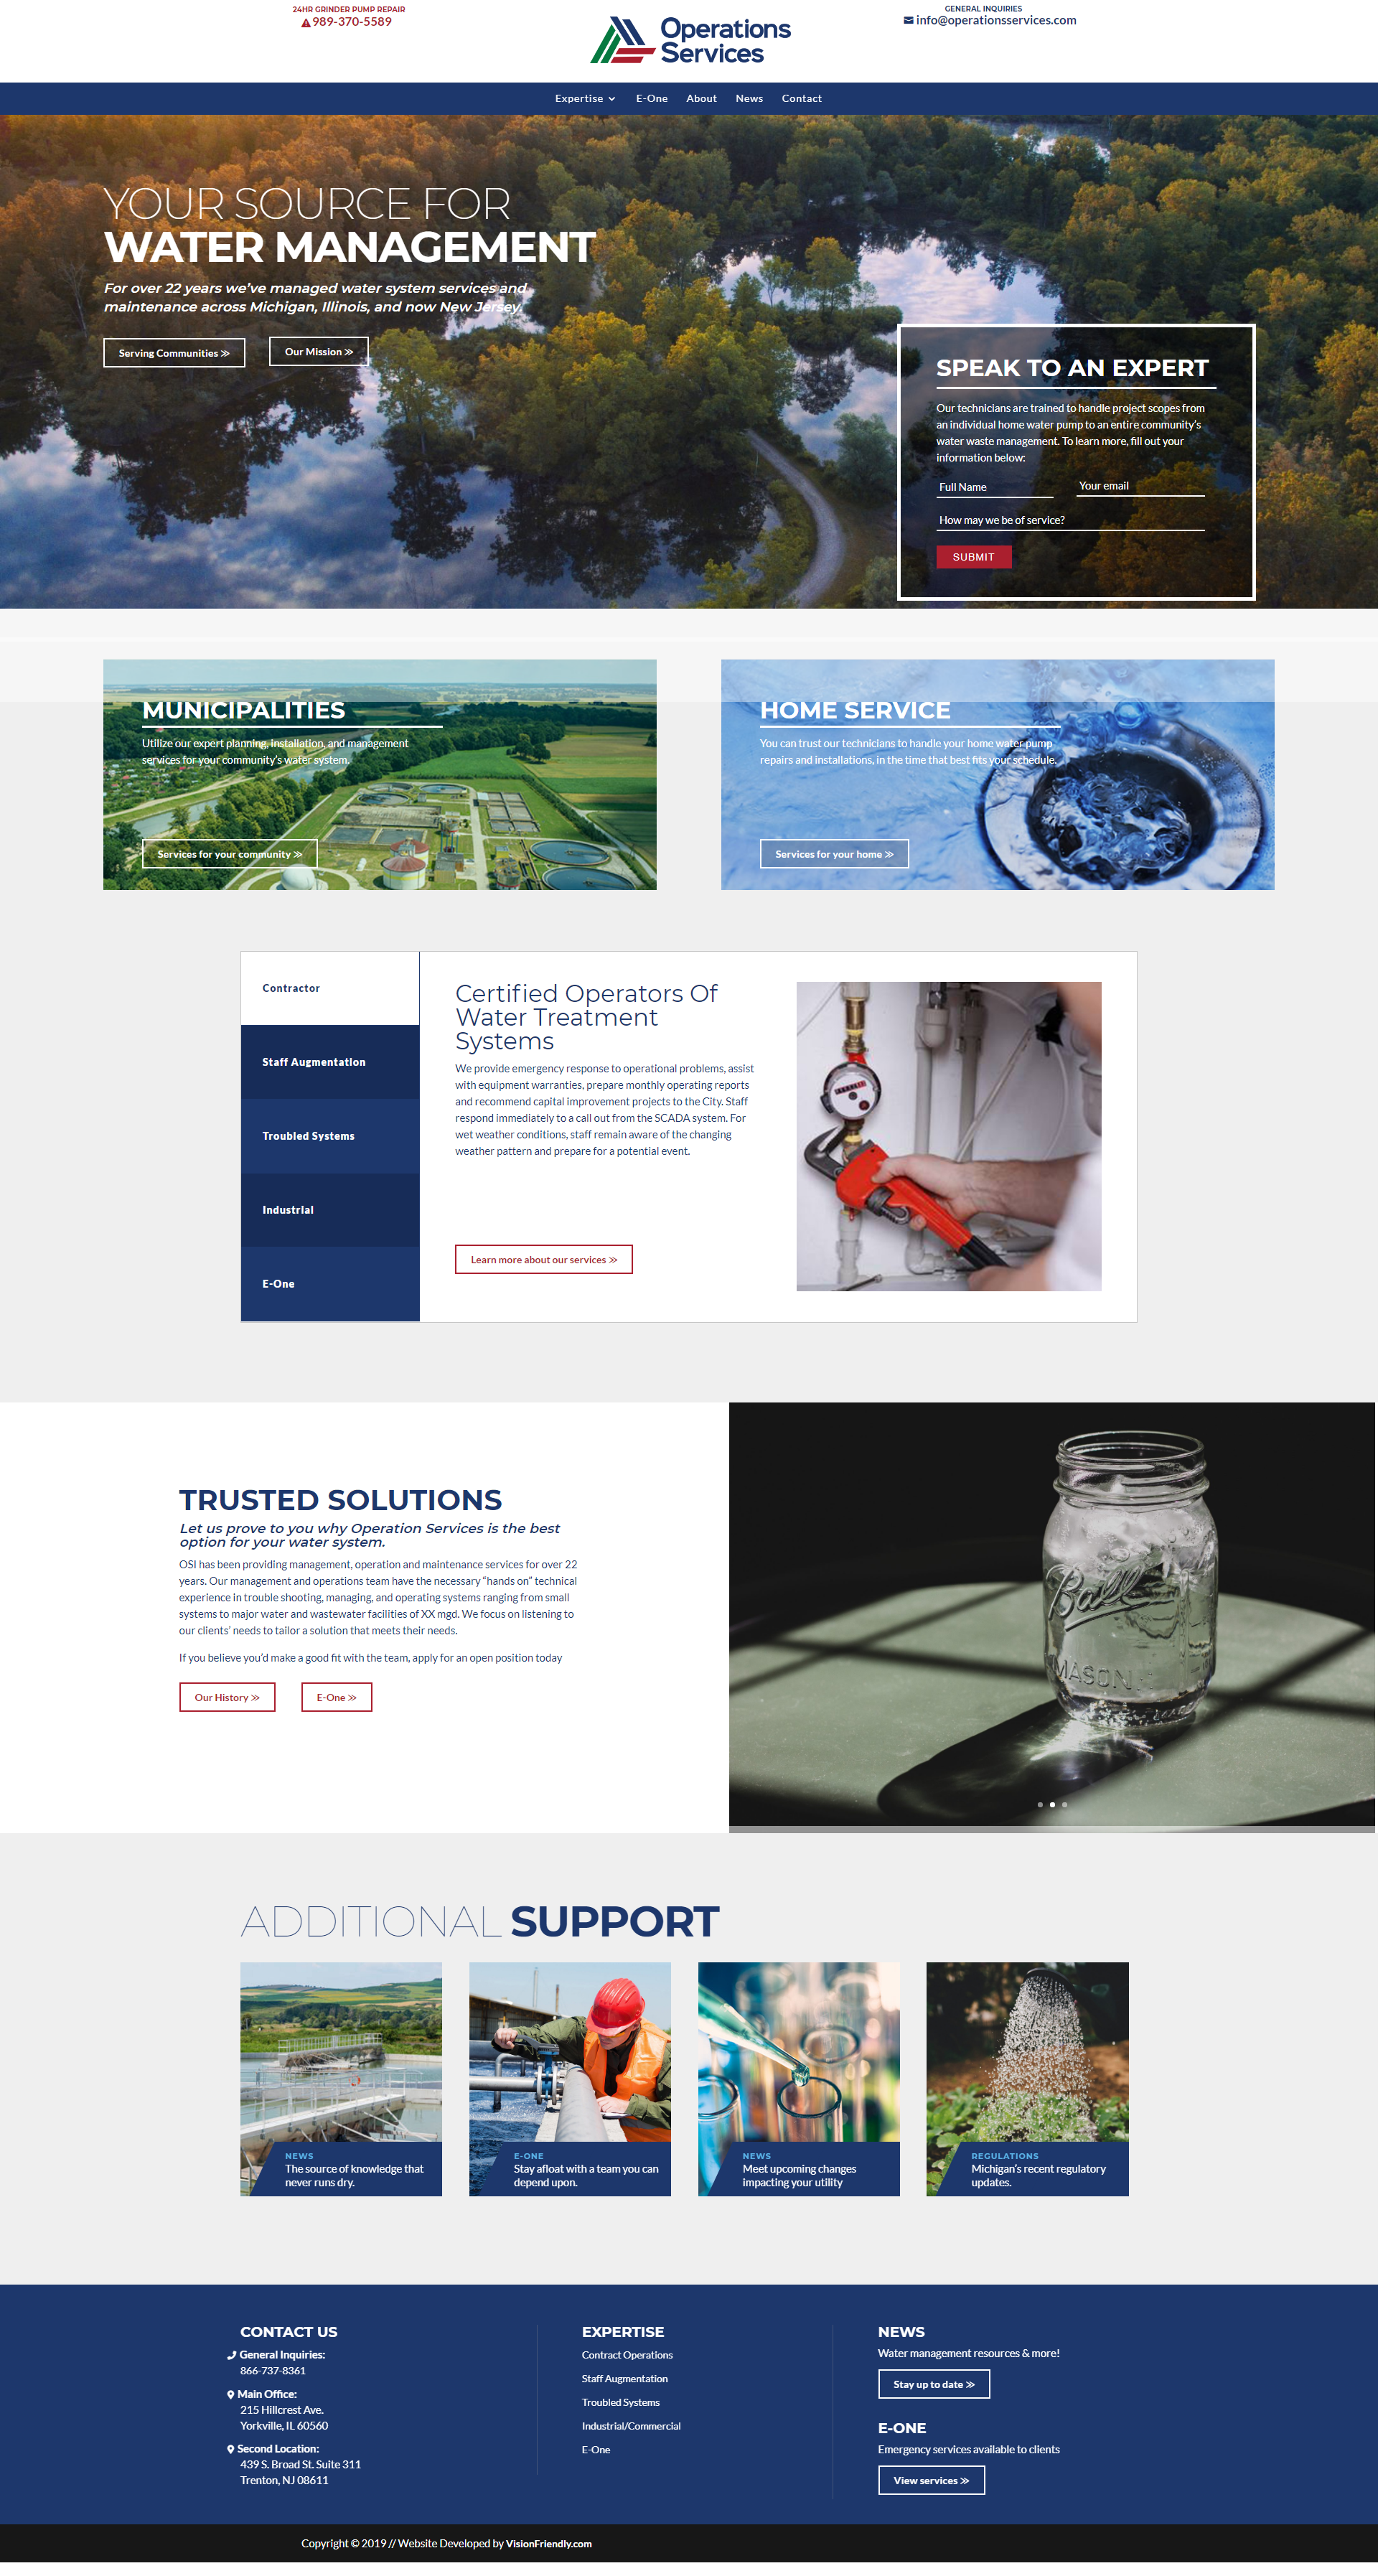 Operations Services Website Design Company Web Design Agency Water Treatment System